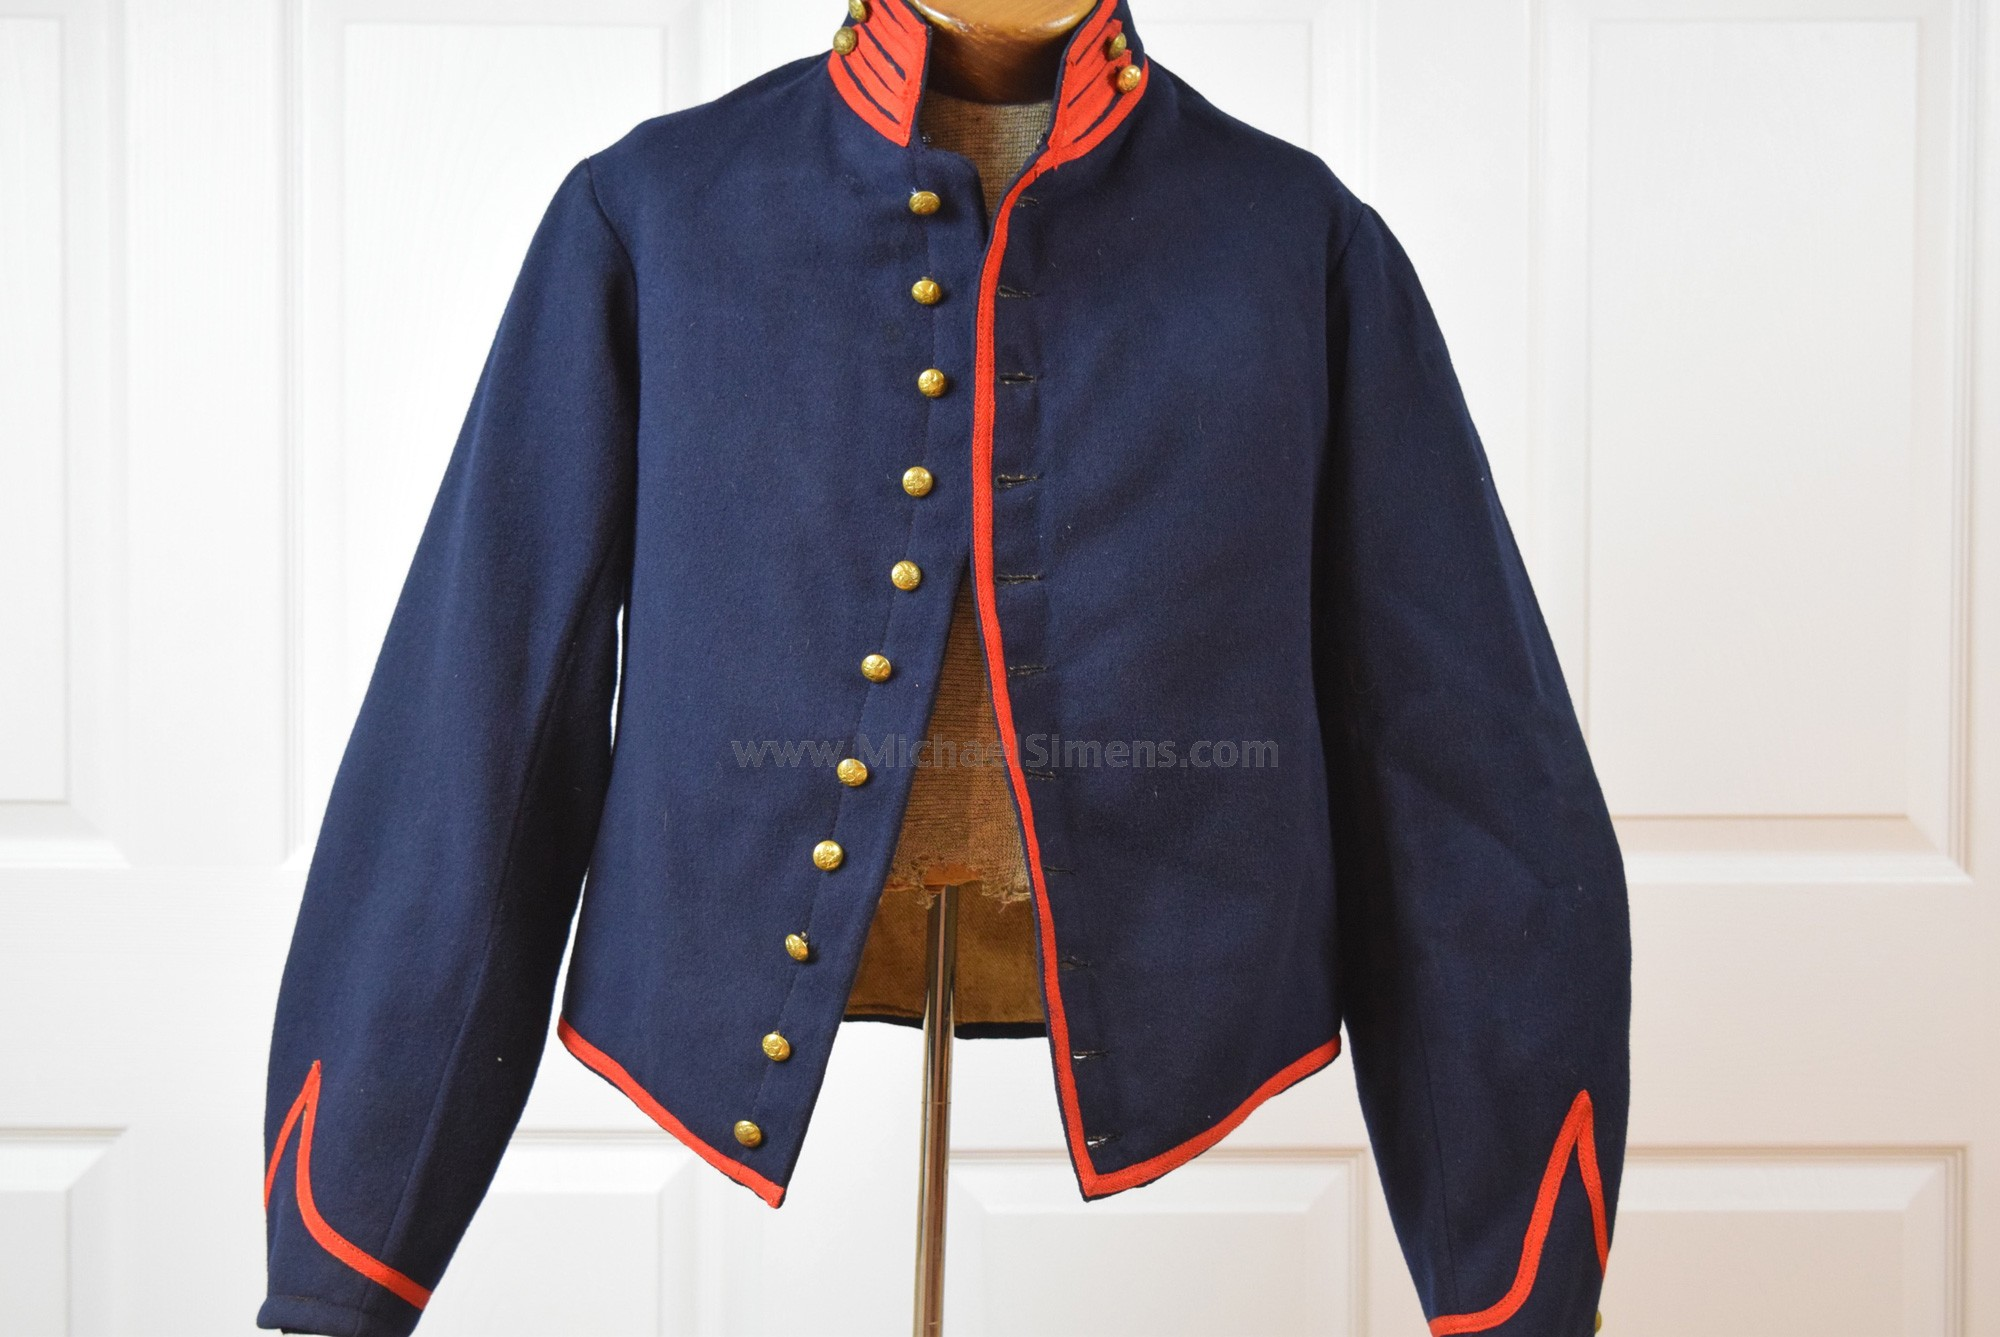 CIVIL WAR ARTILLERY SHELL JACKET